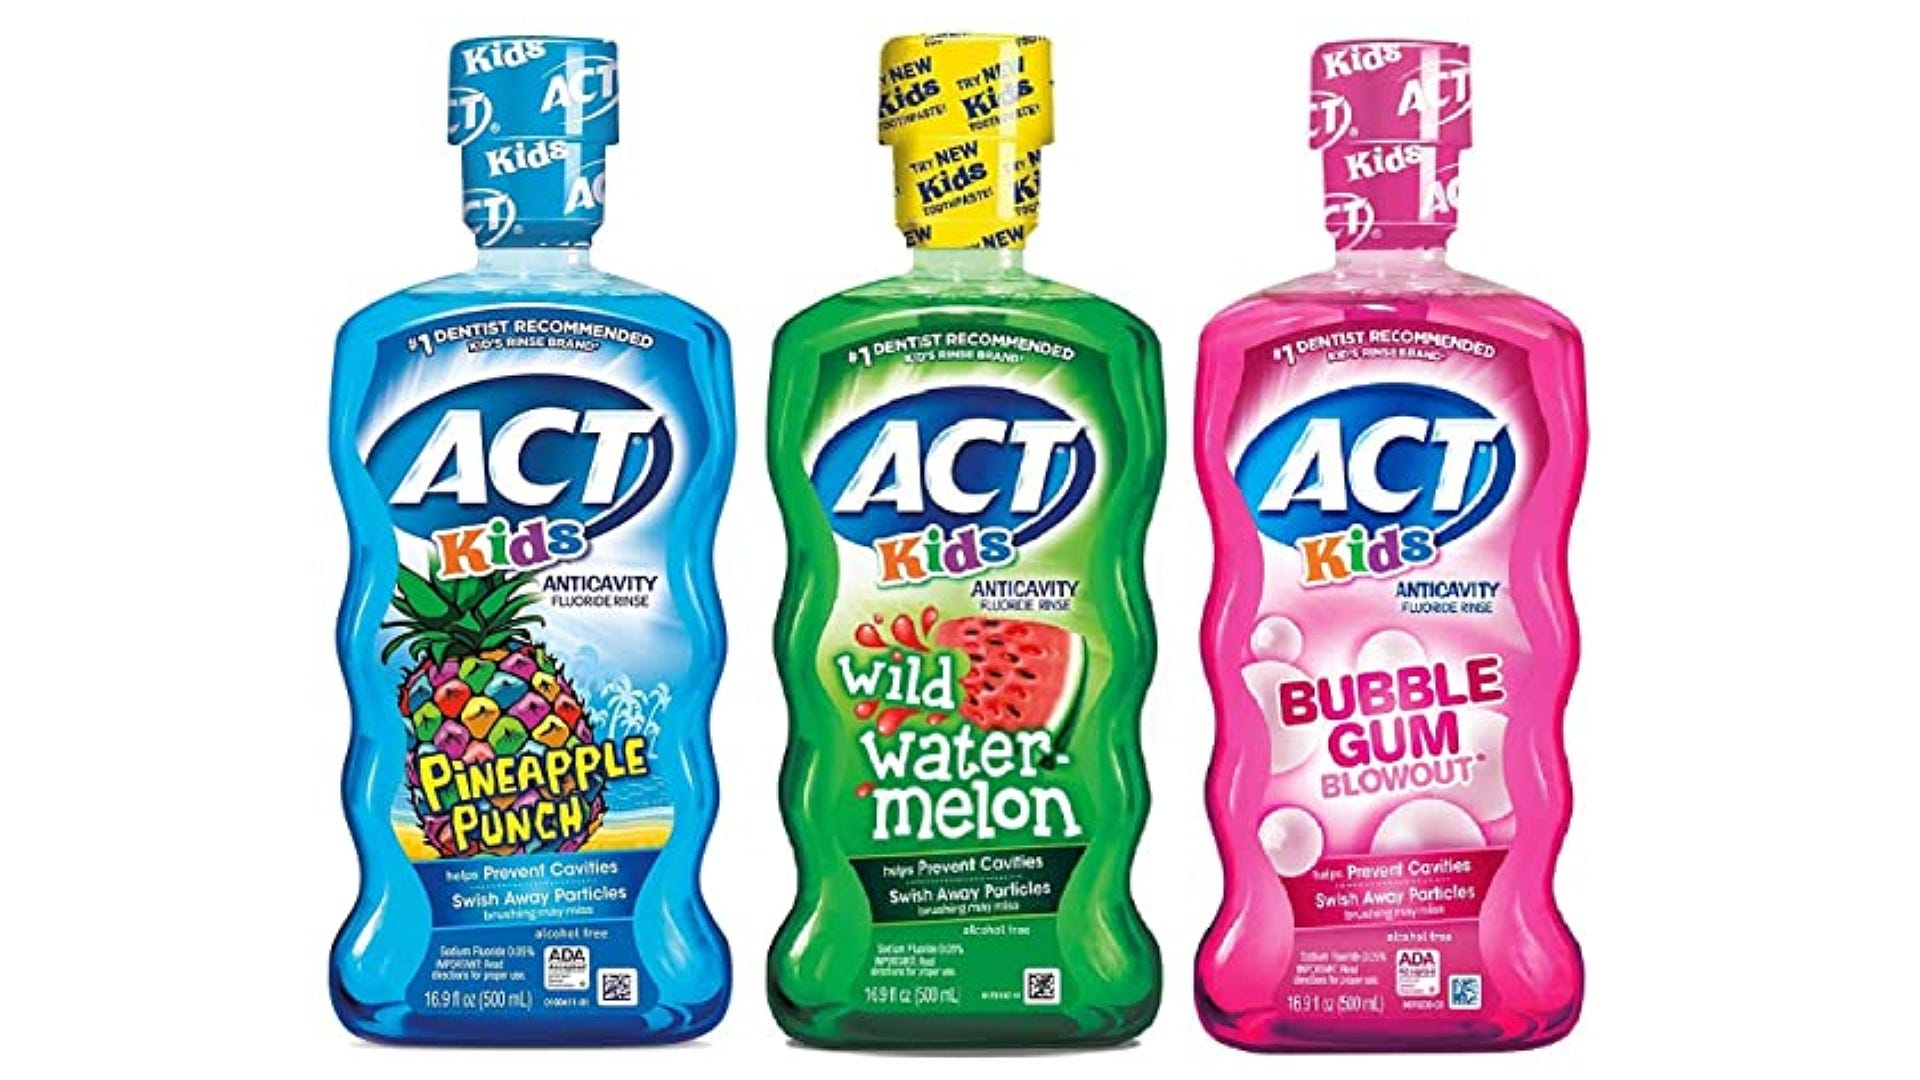 Blue, green, and pink ACT kids mouthwashes with large colorful labels.